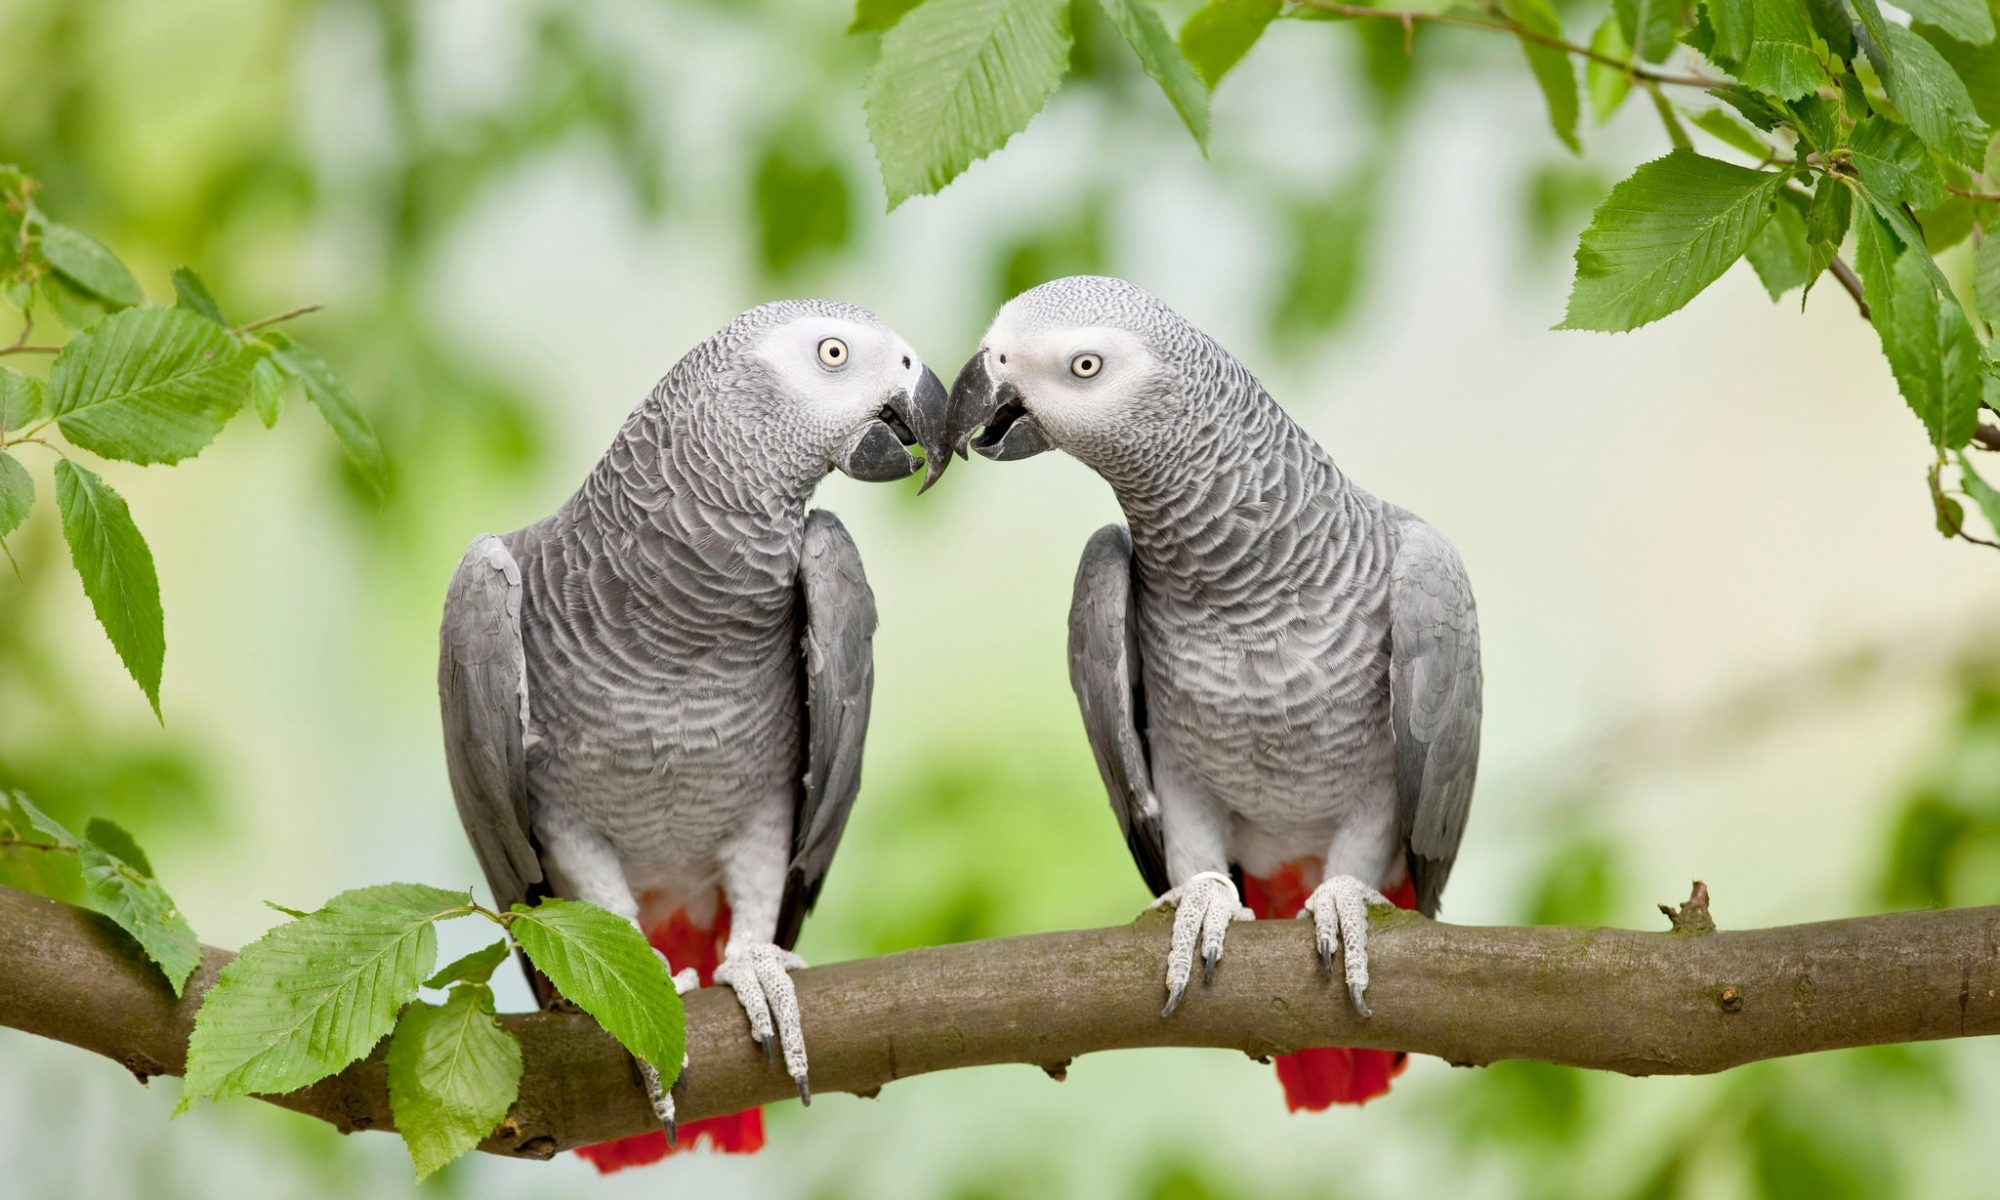 Parrot Have Social Intelligence